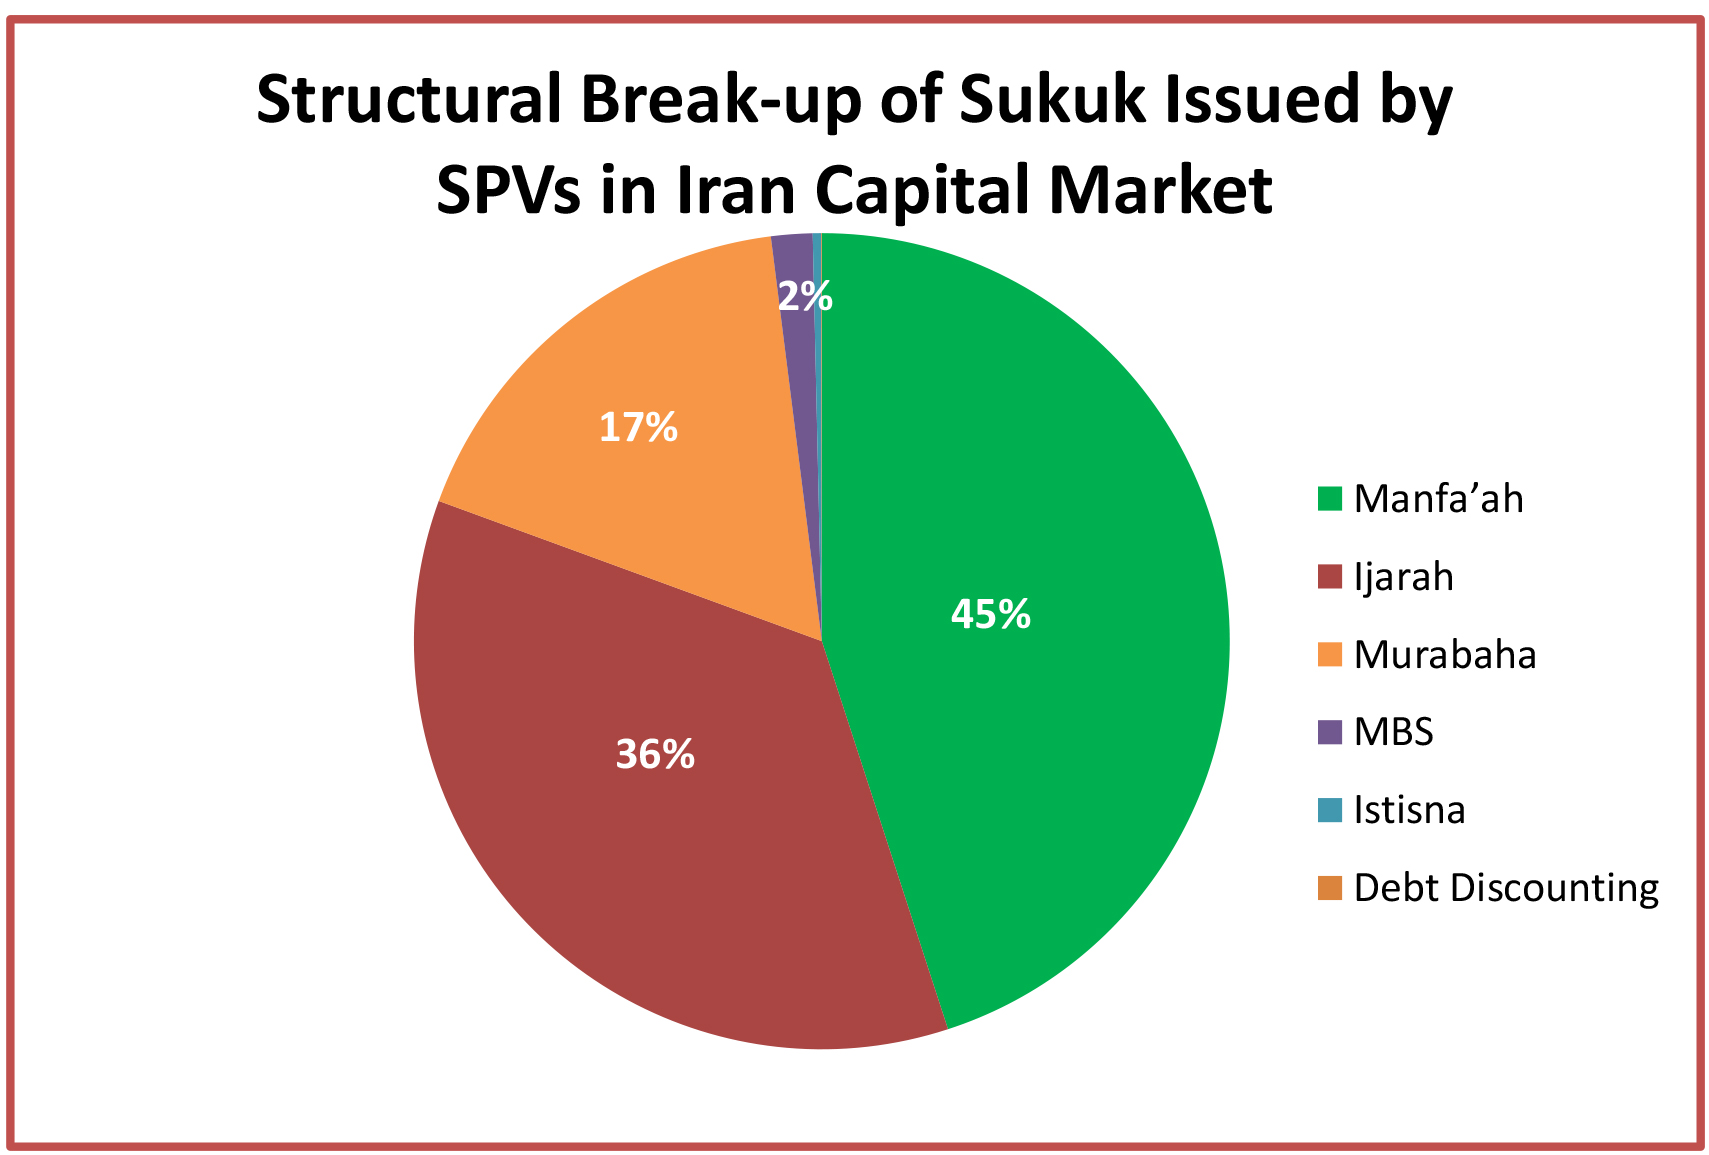 Structural Break-up of Sukuk Issued by SPVs in Iran Capital Market